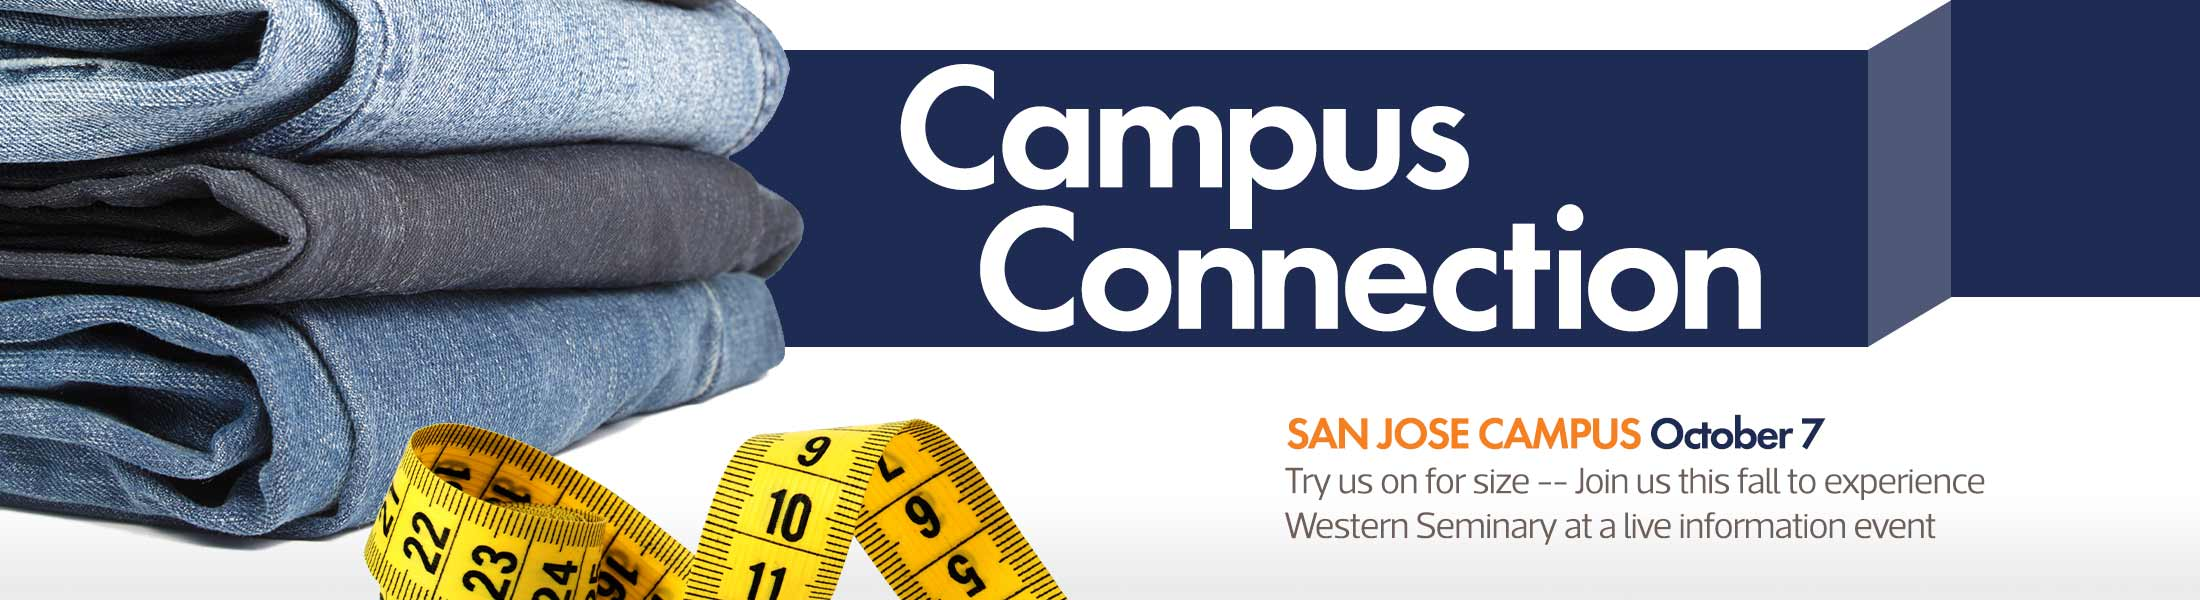 Campus Connection Fall 2015 - Western Seminary San Jose Campus